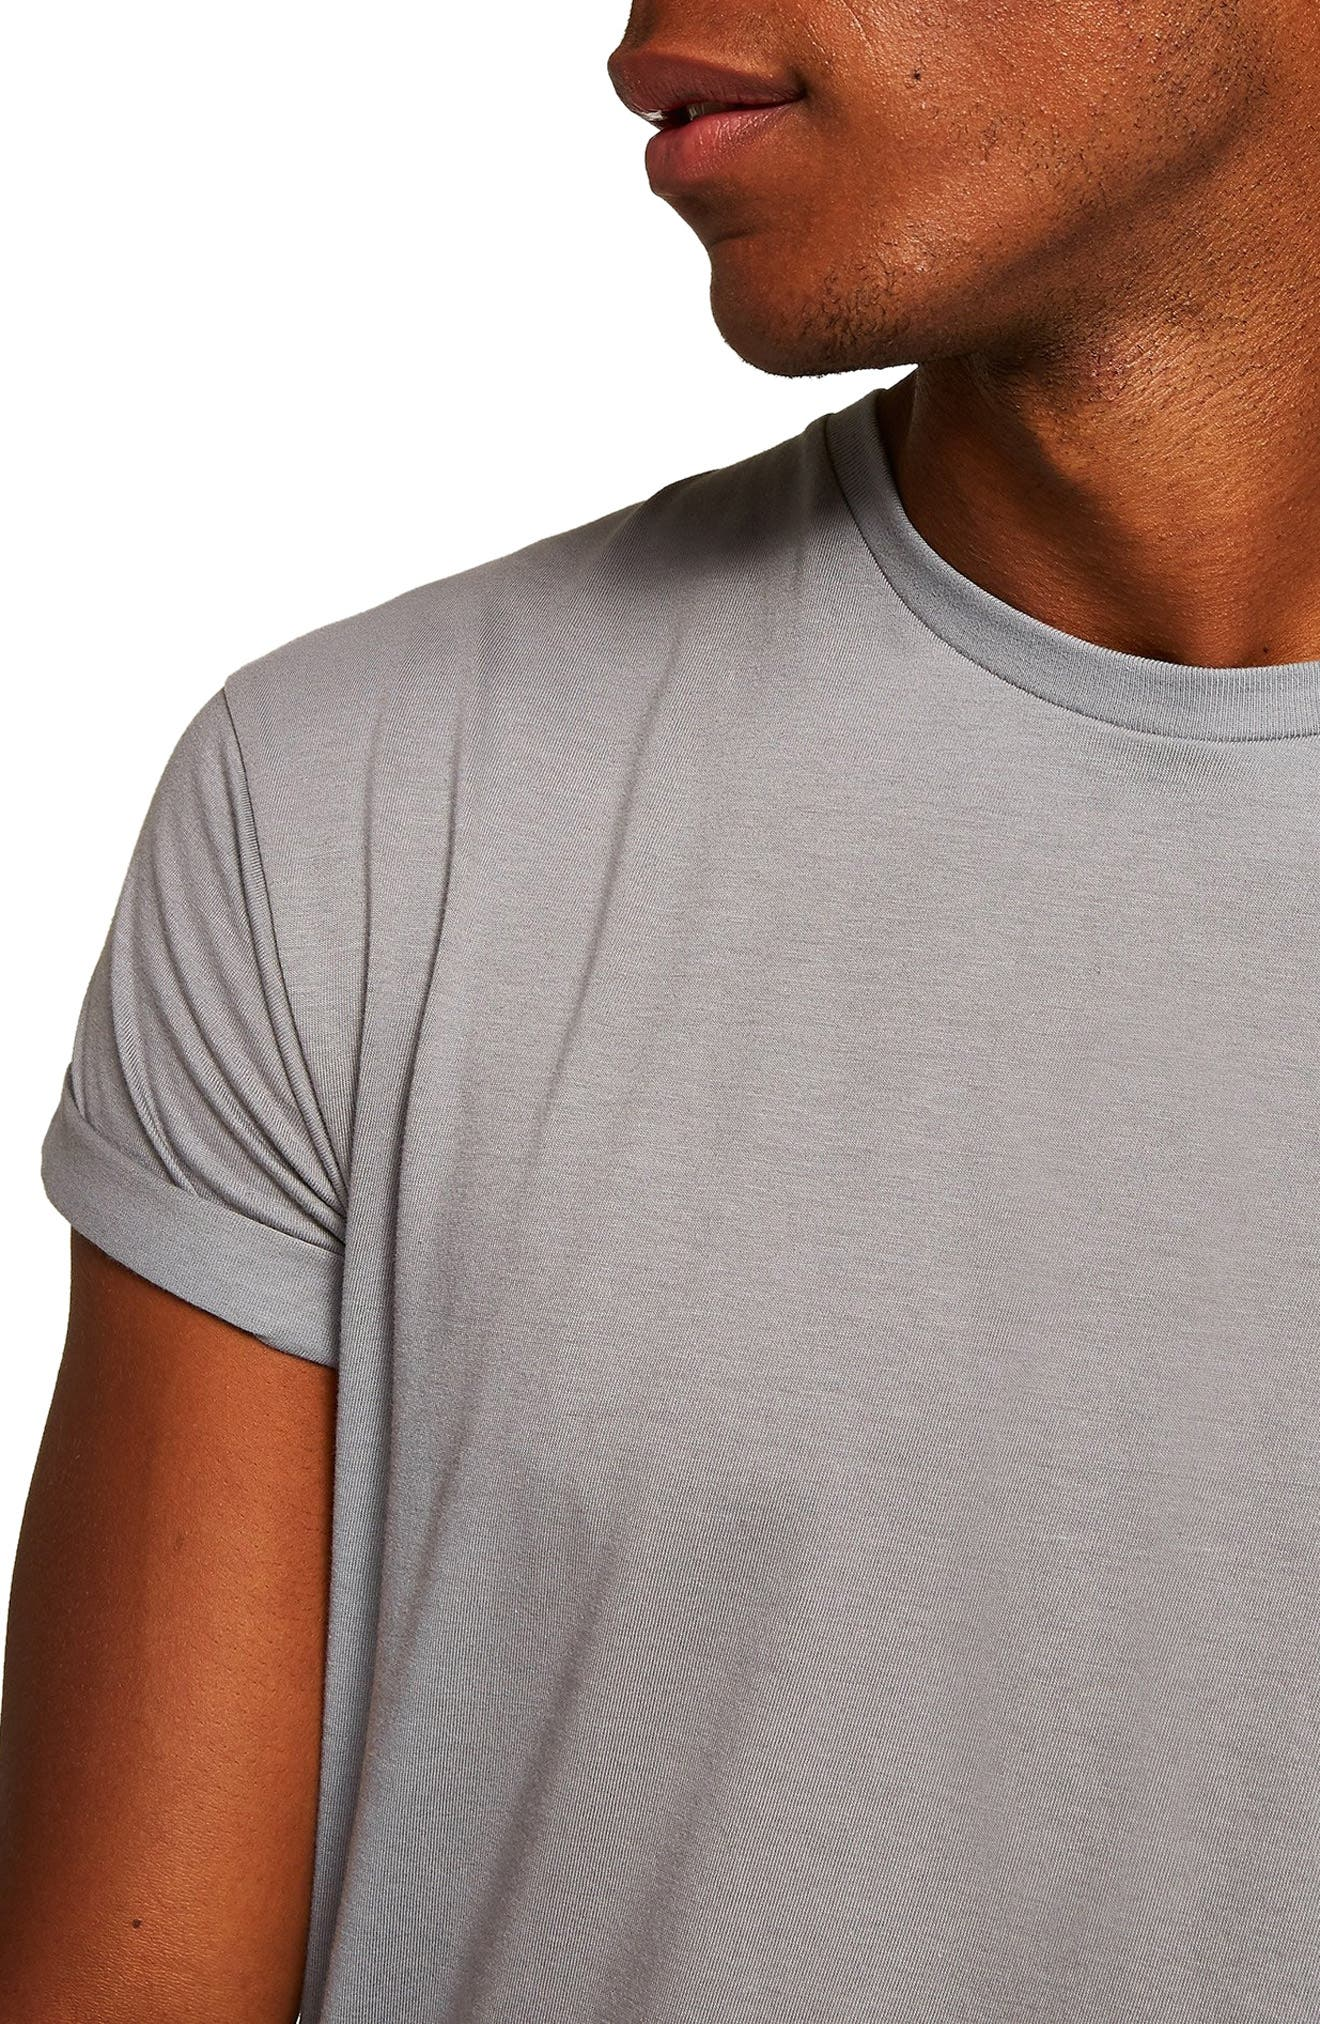 Muscle Fit Roller T-Shirt,                             Alternate thumbnail 4, color,                             CHARCOAL